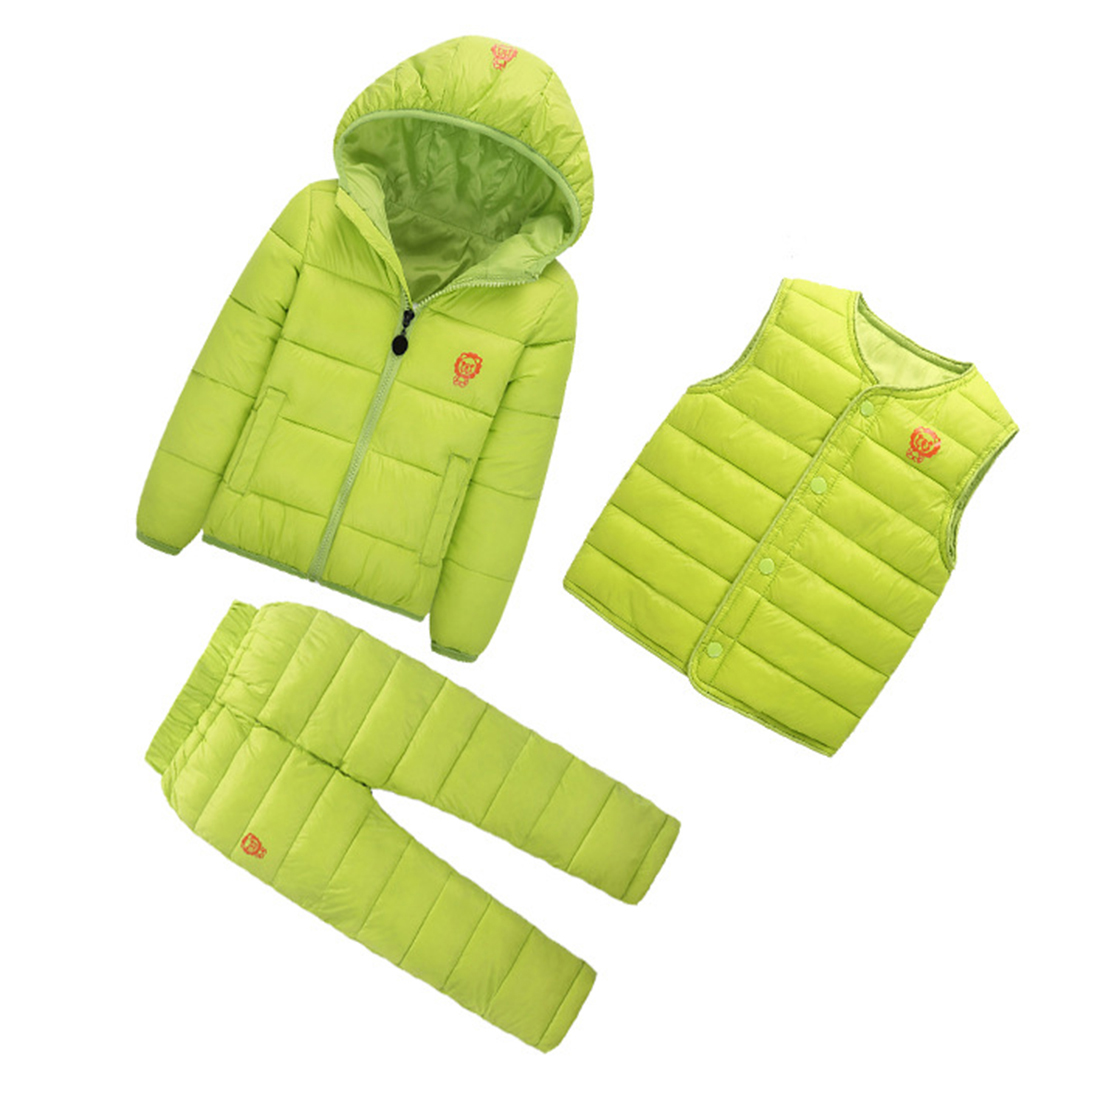 3-Pcs-Lot-Winter-Baby-Girls-Boys-Clothes-Sets-Children-Down-Cotton-padded-Coat-6-Colors-6-Size-3